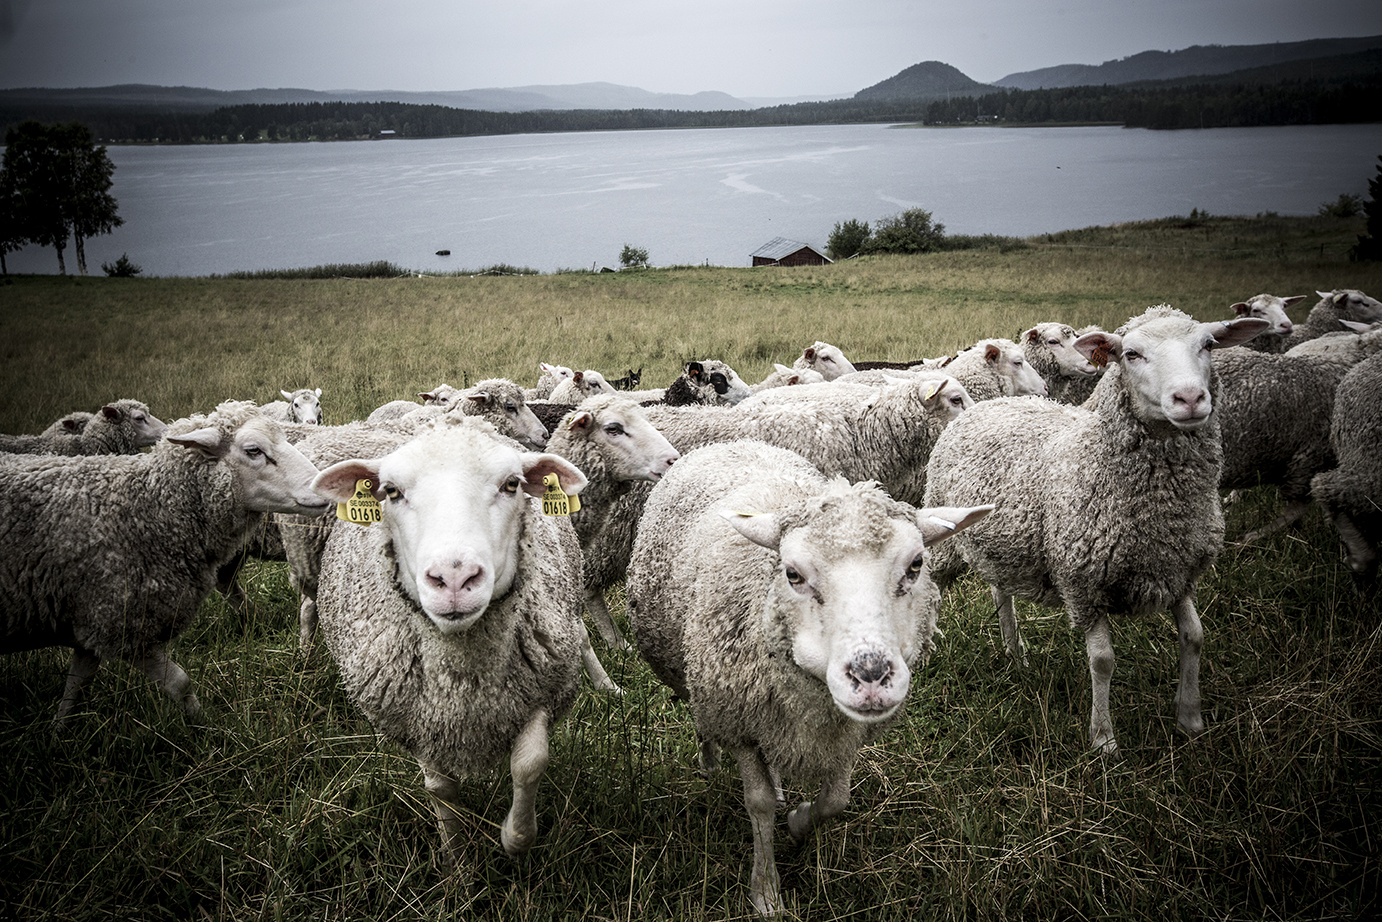 In the foreground, a flock of sheep are walking curiously towards us. Their ears have been tagged for identification. In the background, a large expanse of water stretches into the horizon, where a forest and low mountains can also be seen